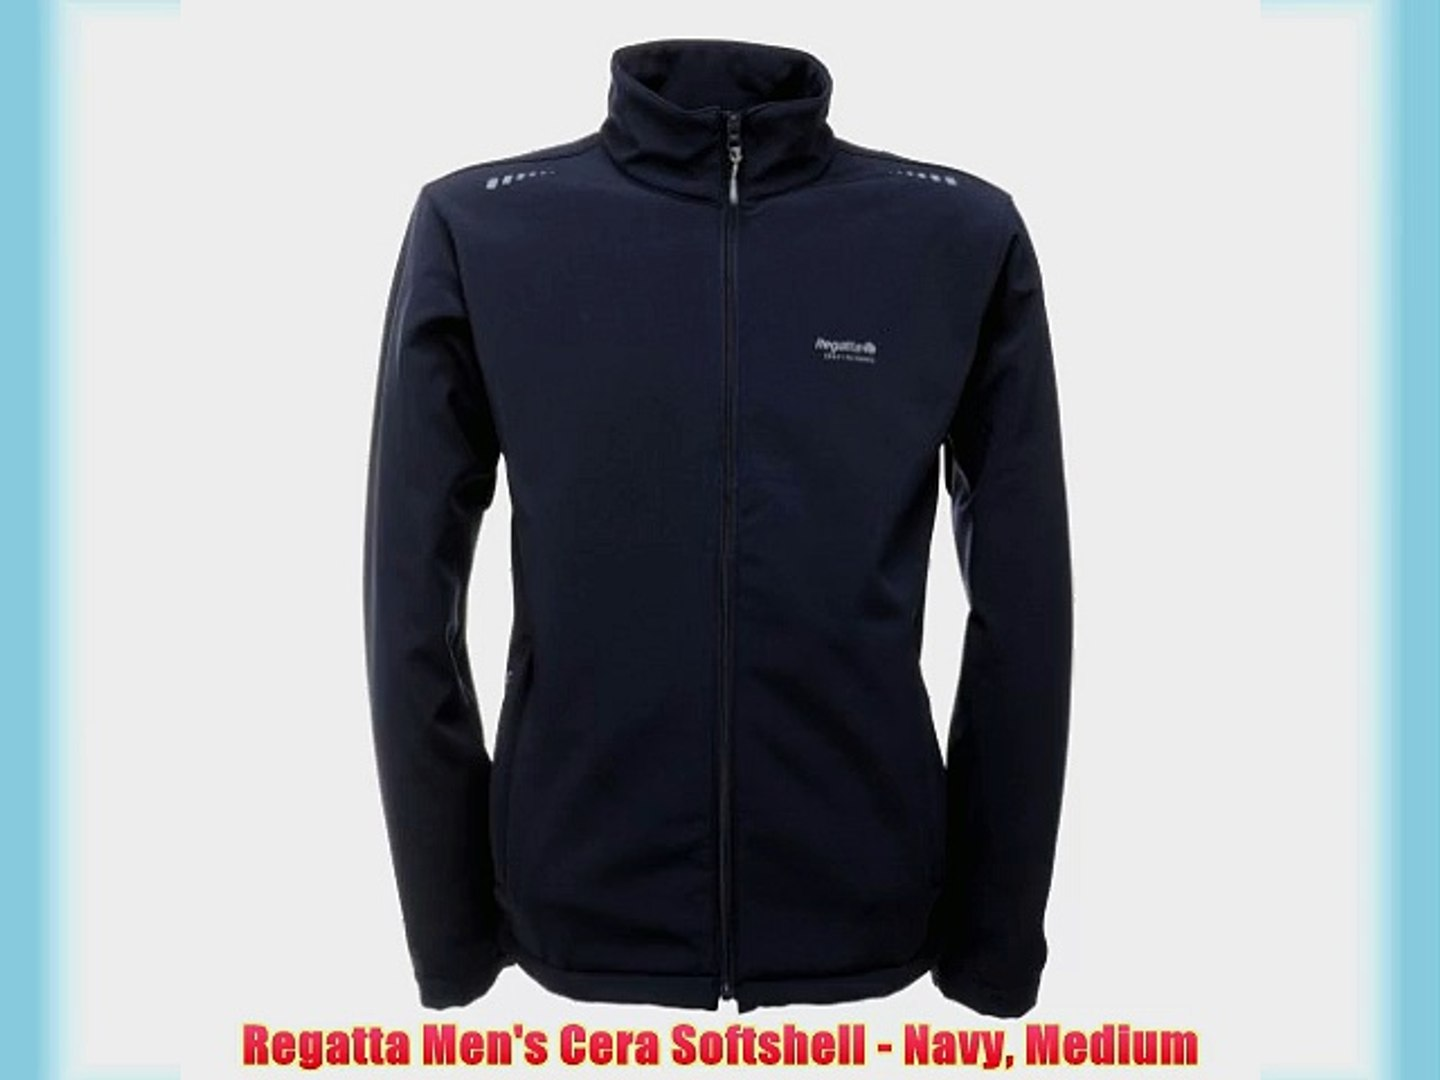 Regatta Mens Classic Softshell Jacket Water Repellent and Wind Resistant